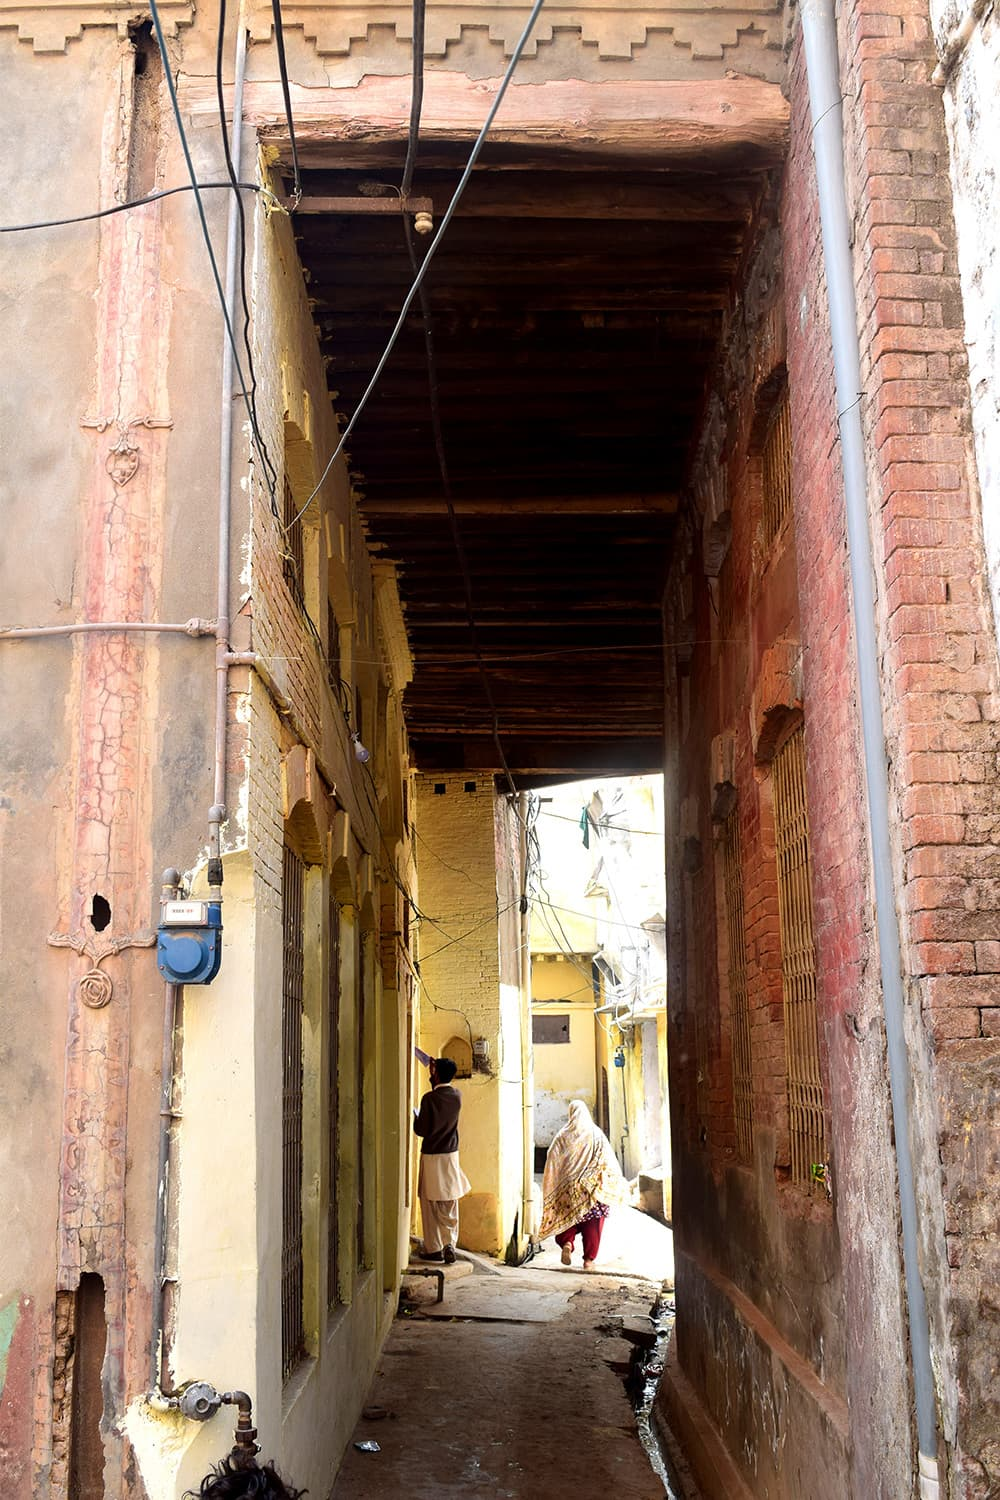 The alleys in the walled city.